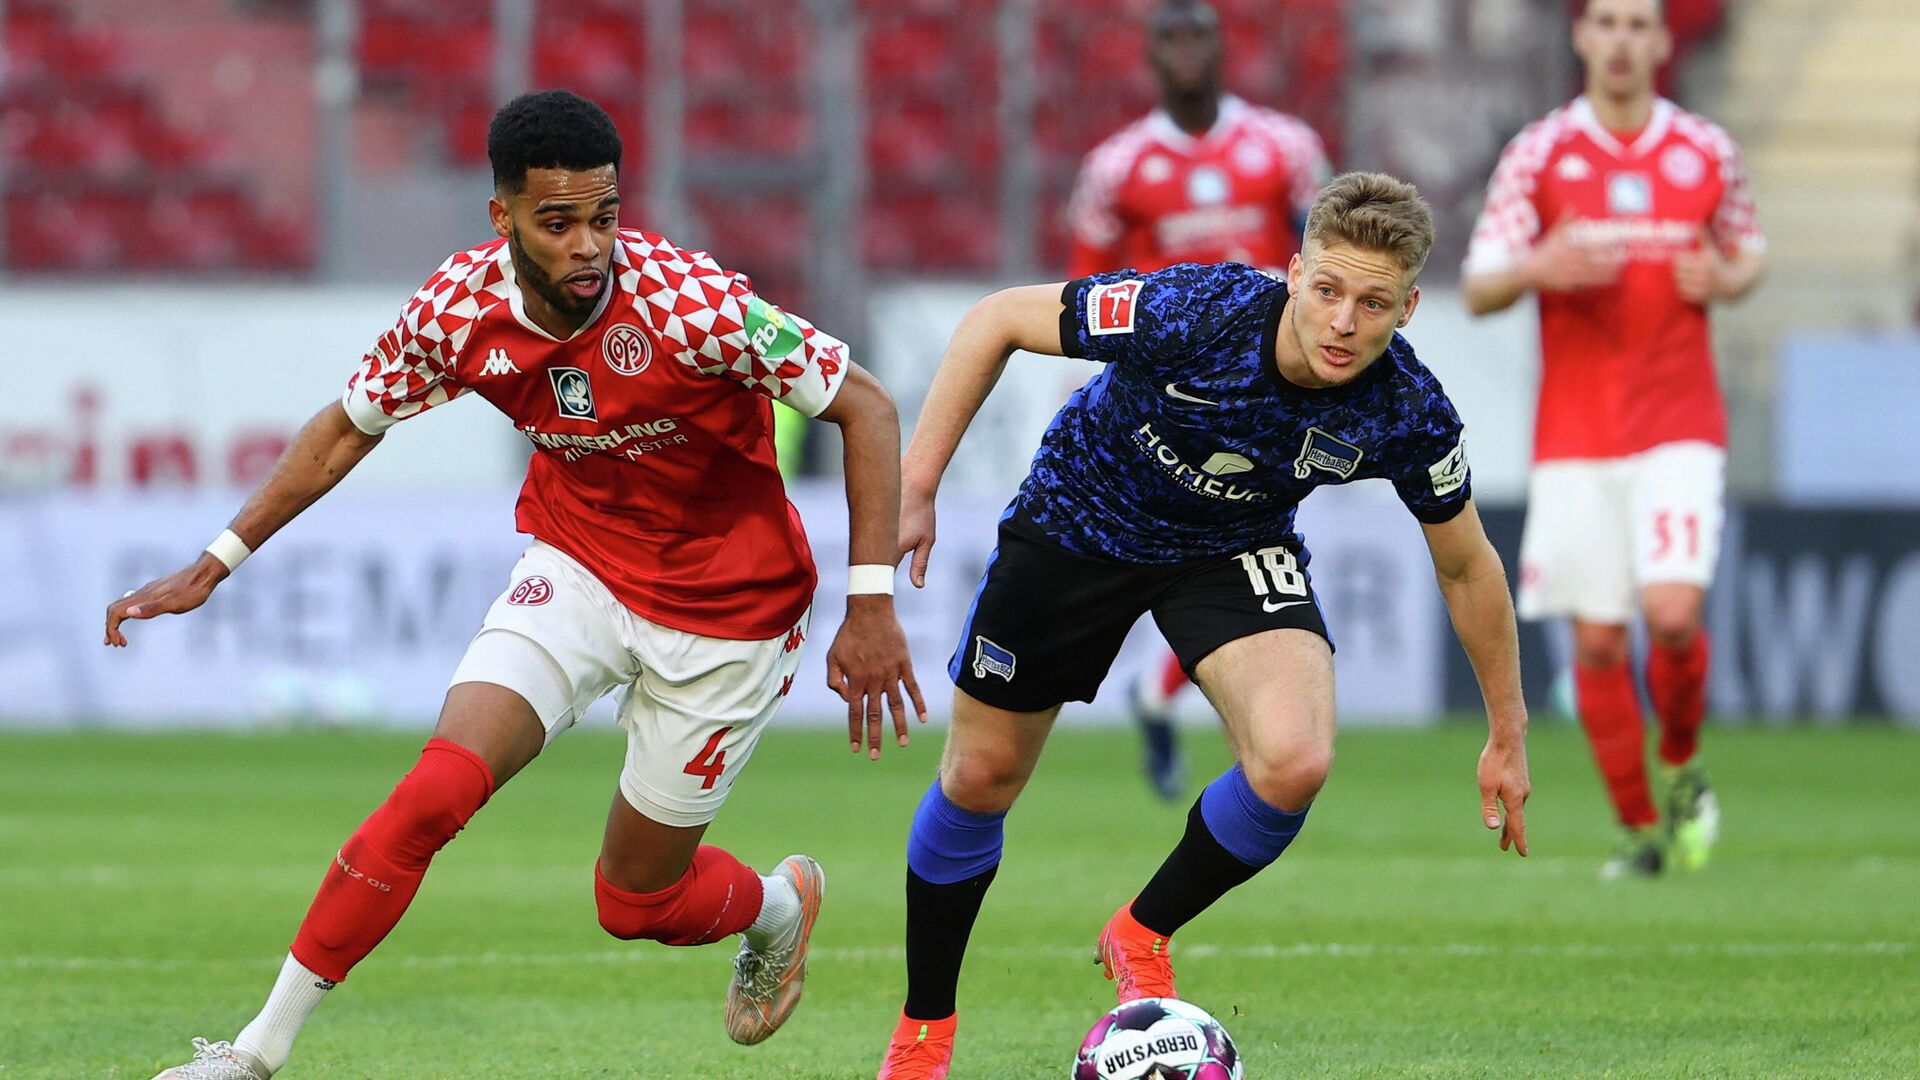 Mainz' Dutch defender Jeremiah St Juste (L) and Hertha Berlin's Argentinian midfielder Santiago Ascacibar vie for the ball during the German first division Bundesliga football match between Mainz 05 vs Hertha Berlin in Mainz, western Germany, on Mai 3, 2021. (Photo by KAI PFAFFENBACH / POOL / AFP) / DFL REGULATIONS PROHIBIT ANY USE OF PHOTOGRAPHS AS IMAGE SEQUENCES AND/OR QUASI-VIDEO - РИА Новости, 1920, 03.05.2021